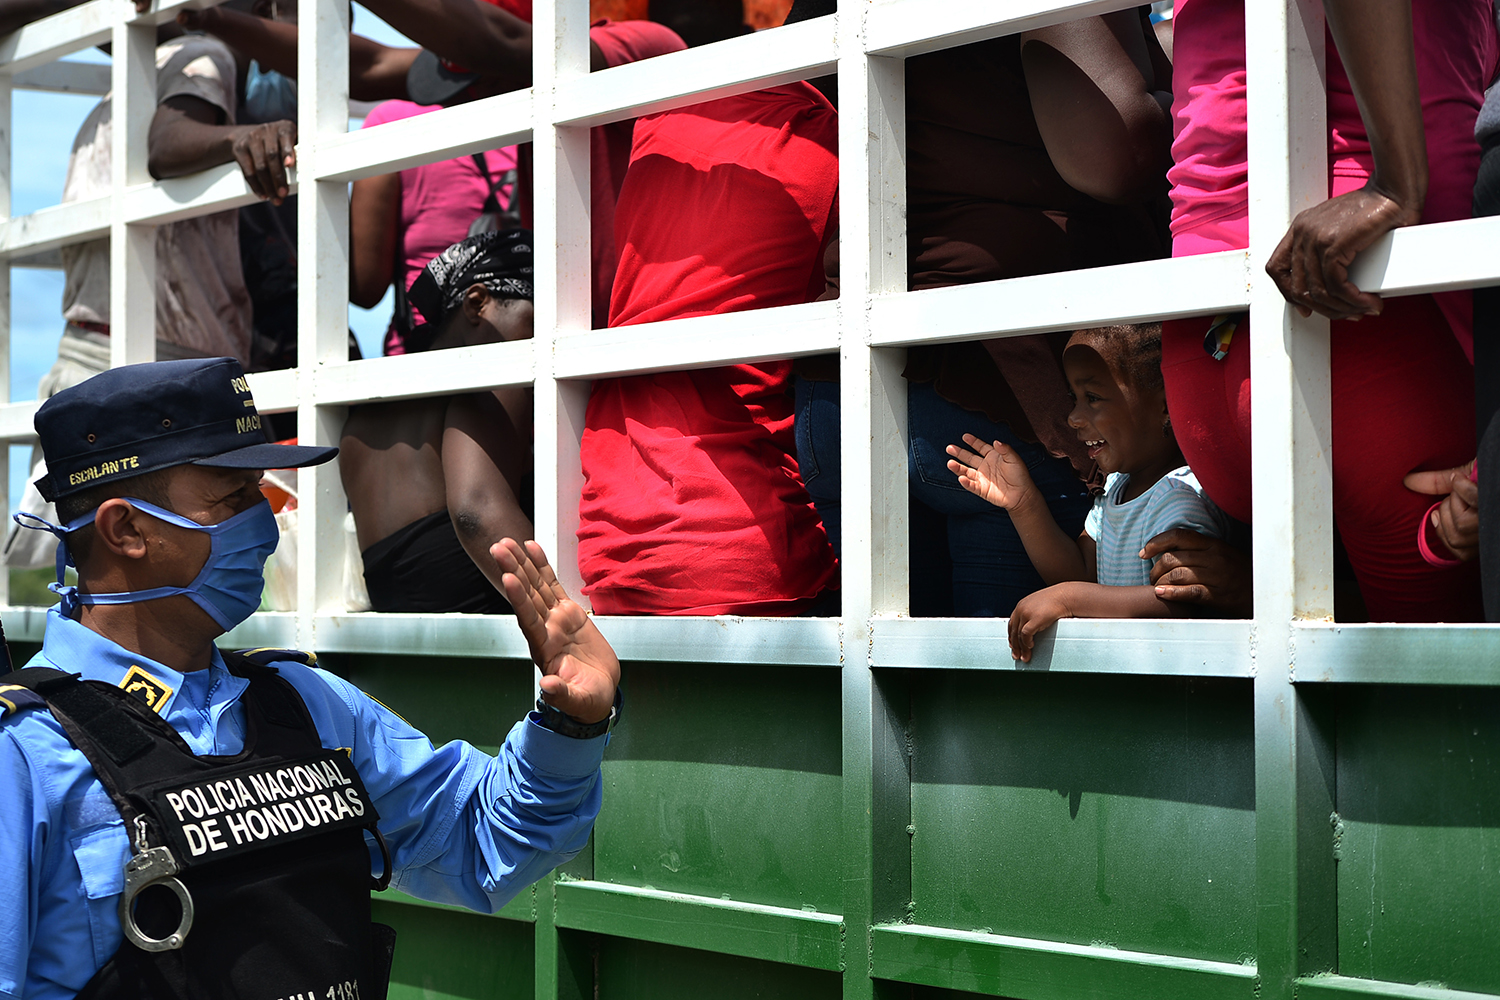 A police officer waves at a migrant girl riding in a caravan in Cerro de Hula, Honduras, on June 3. Nearly one hundred migrants from Congo, Ghana, Ivory Coast, Haiti, and Cuba heading from Honduras to Mexico were stopped by the police for sanitary controls amid the coronavirus pandemic. ORLANDO SIERRA/AFP via Getty Images